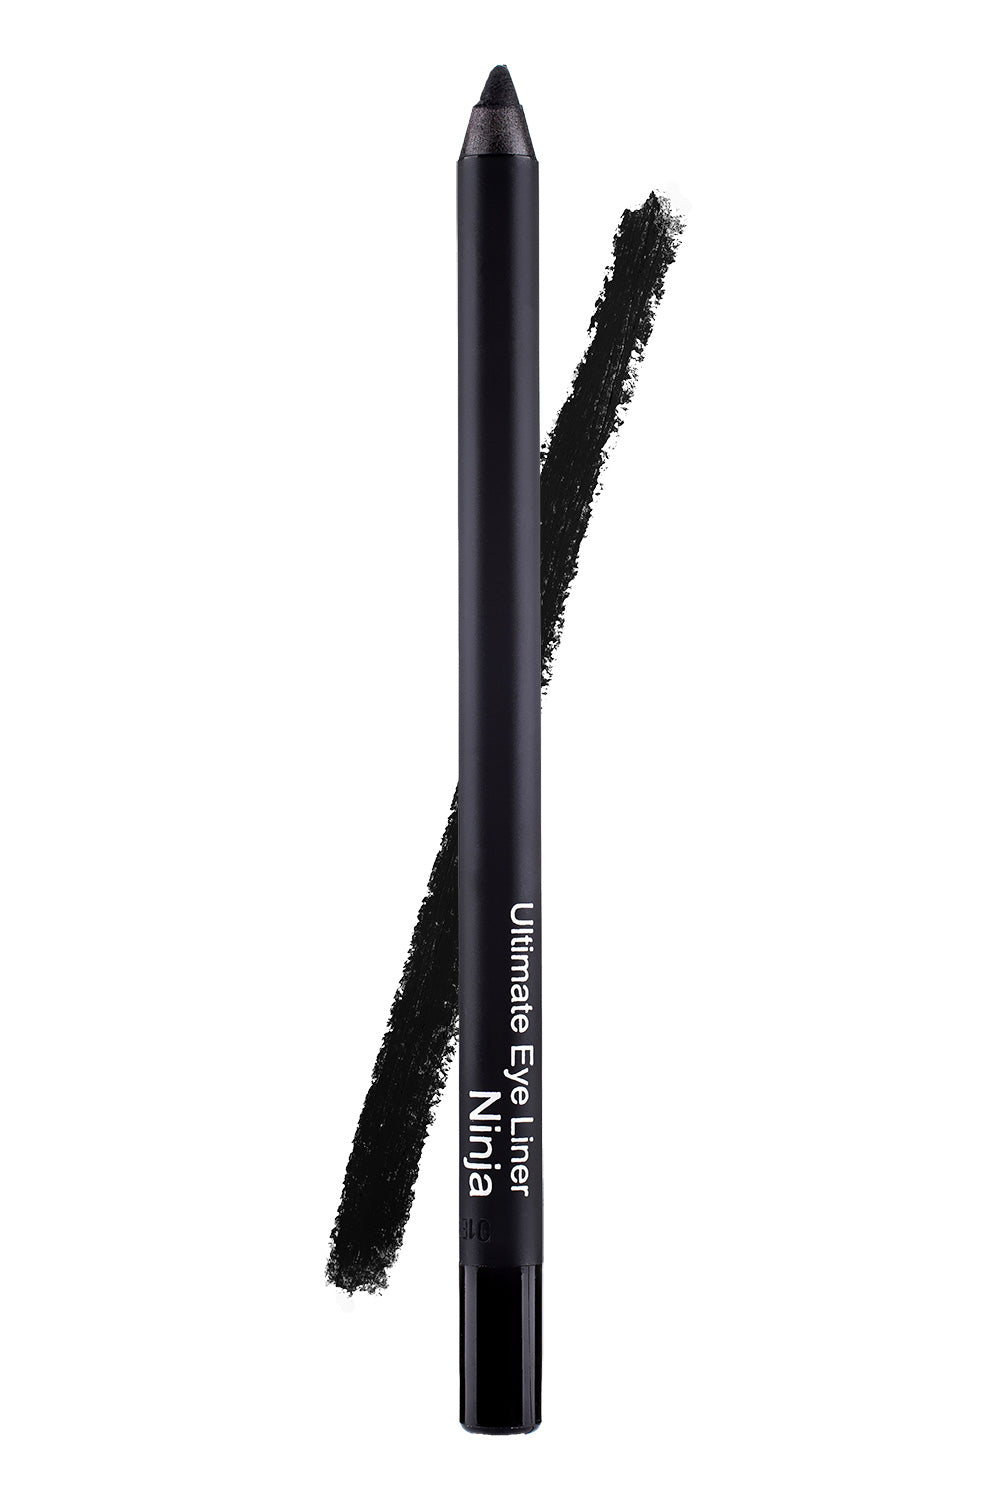 Ninja - Type 4 Eye Liner Pencil